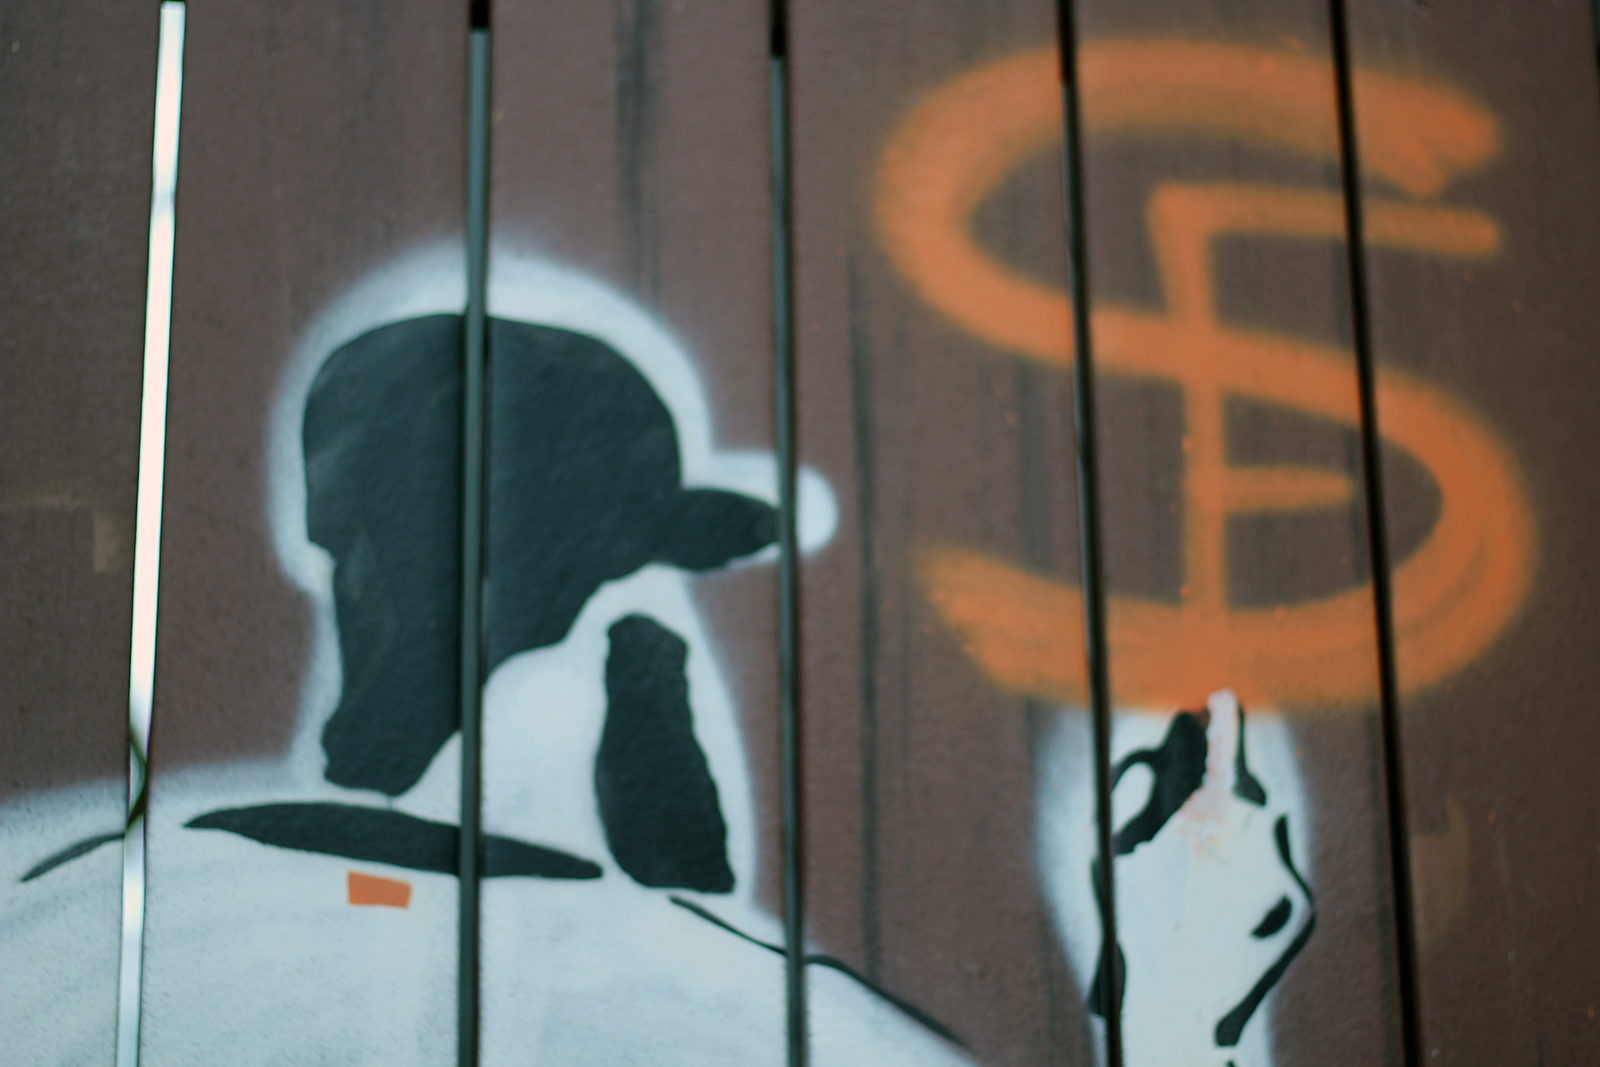 A mural on a fence door shows pitcher Brian Wilson painting the San Francisco Giants symbol.